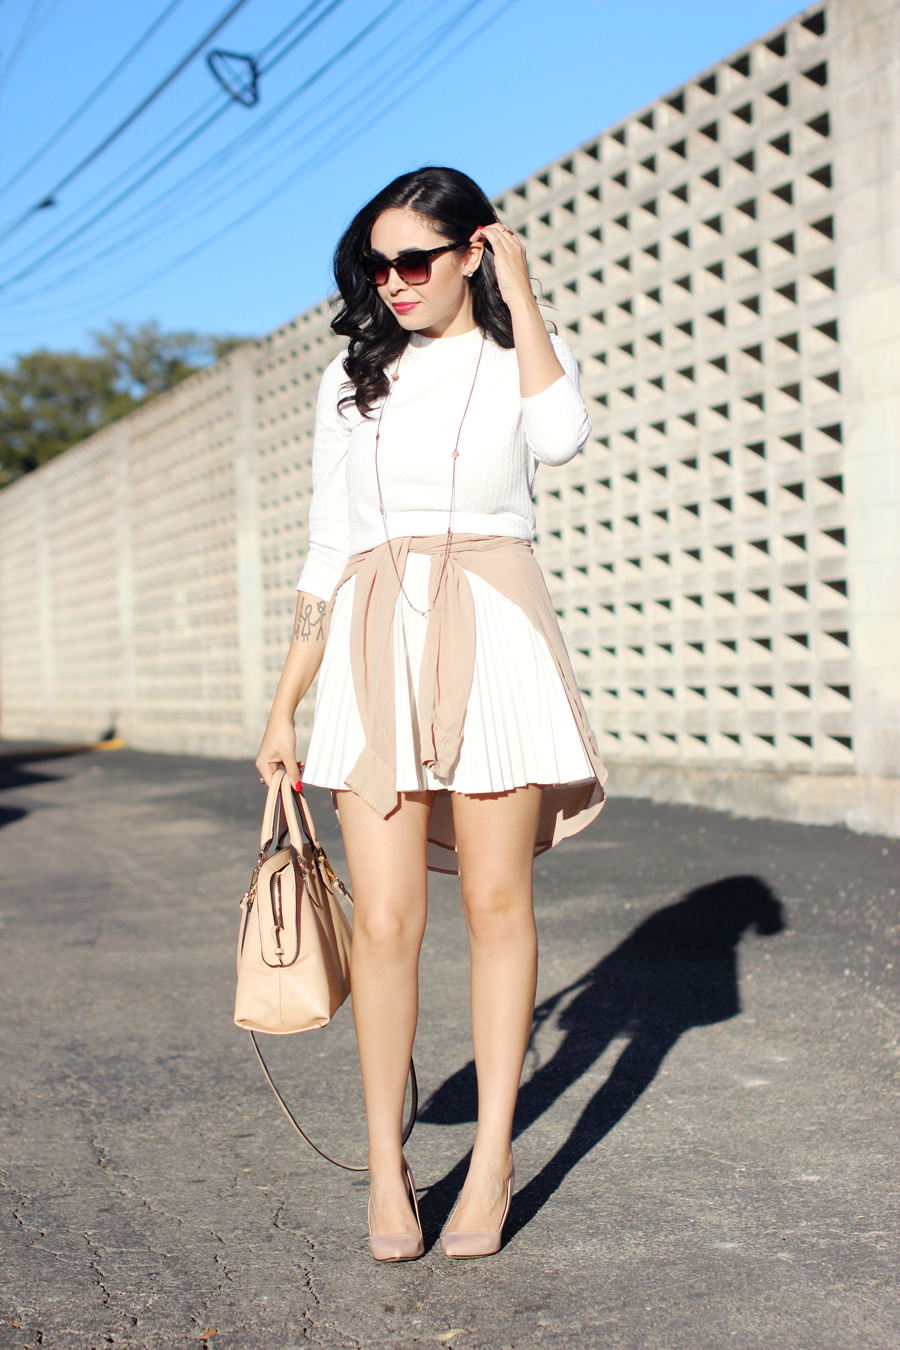 FTT-WHITE-TENNIS-PLEATED-SKIRT-CROP-KNIT-RED-LIPS-NUDE-ALDO-PUMPS-8